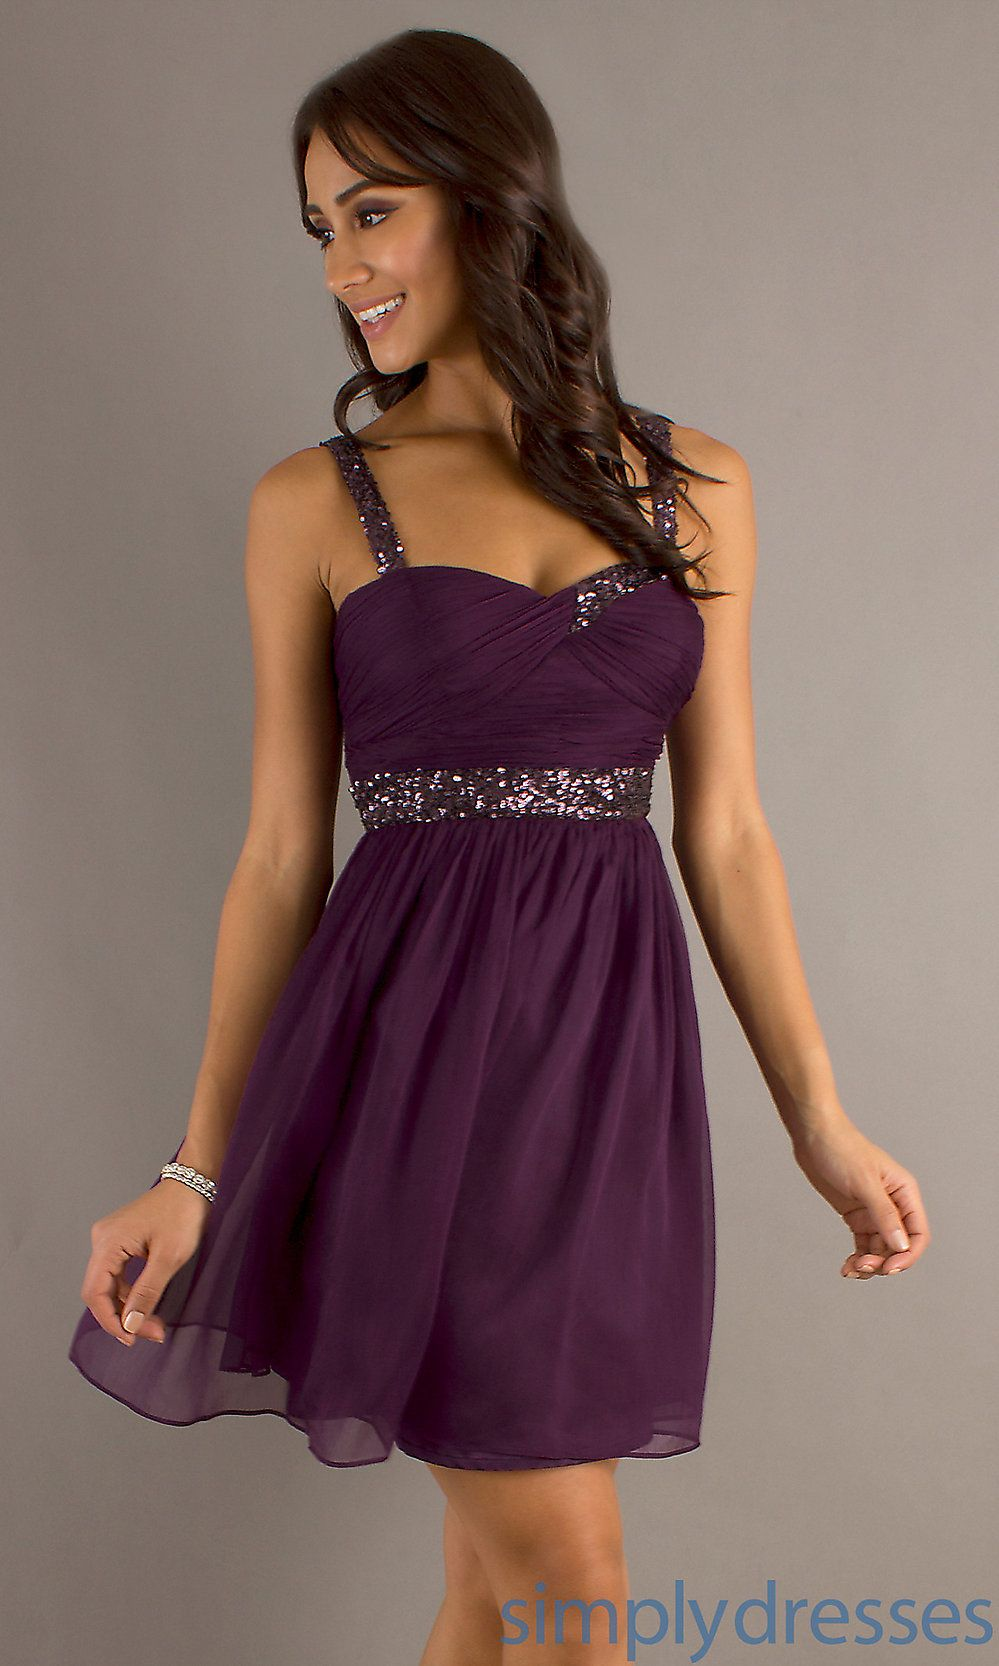 DQ-8381 - Sleeveless Short Homecoming Party Dress with Sequins ...